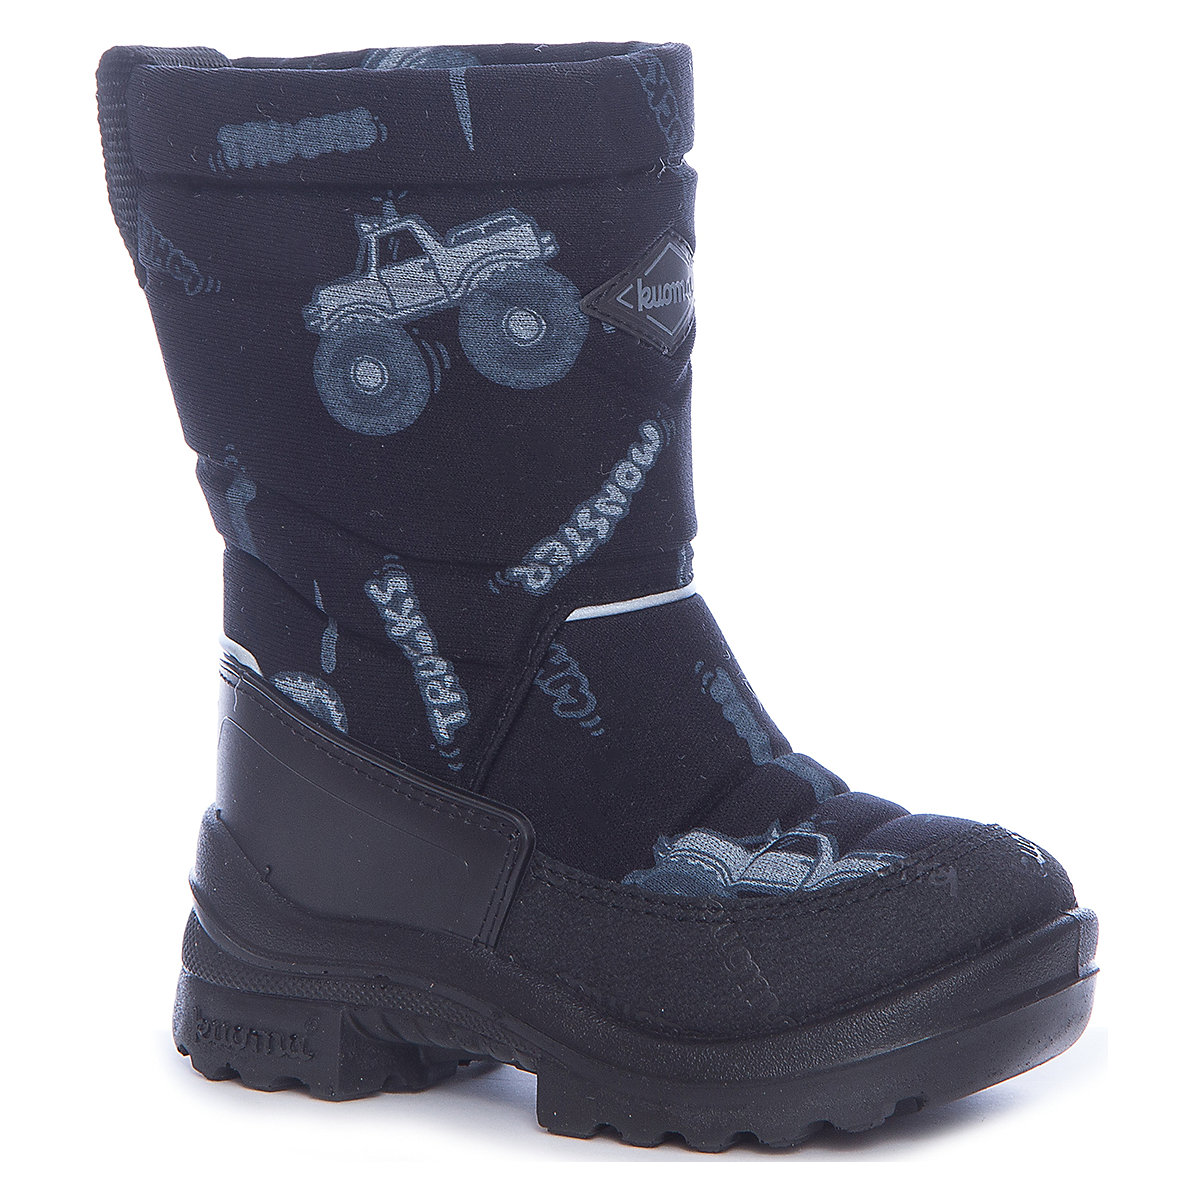 Boots KUOMA for boys 7047117 Valenki Uggi Winter Baby Kids Children shoes